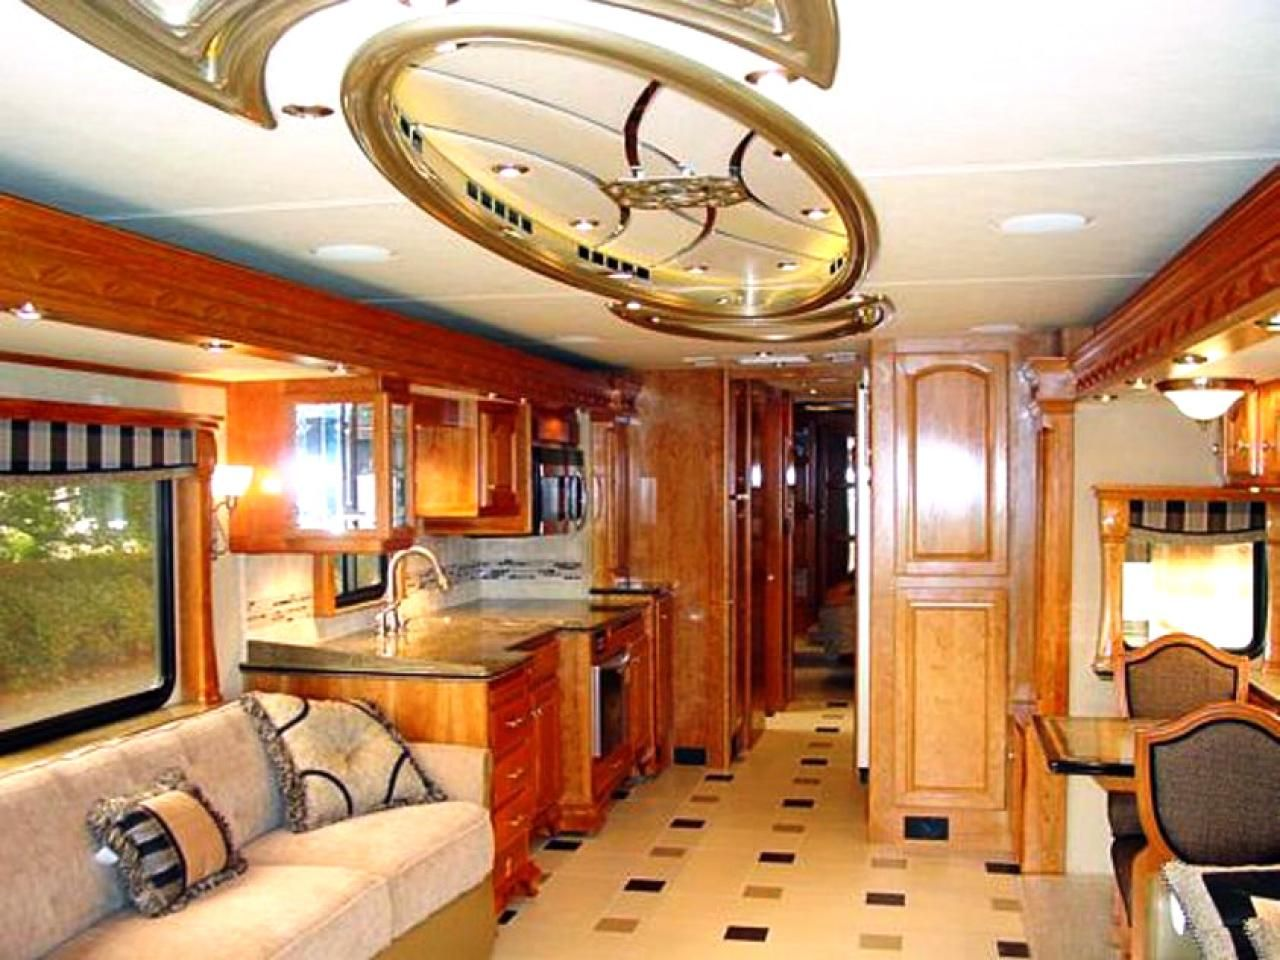 At Dave And Lj S Rv Interior Design We Have A Wide Selection Of Rv Furniture Description From Housesplans Us I Searched F Luxury Rv Rvs Interior Rv Interior